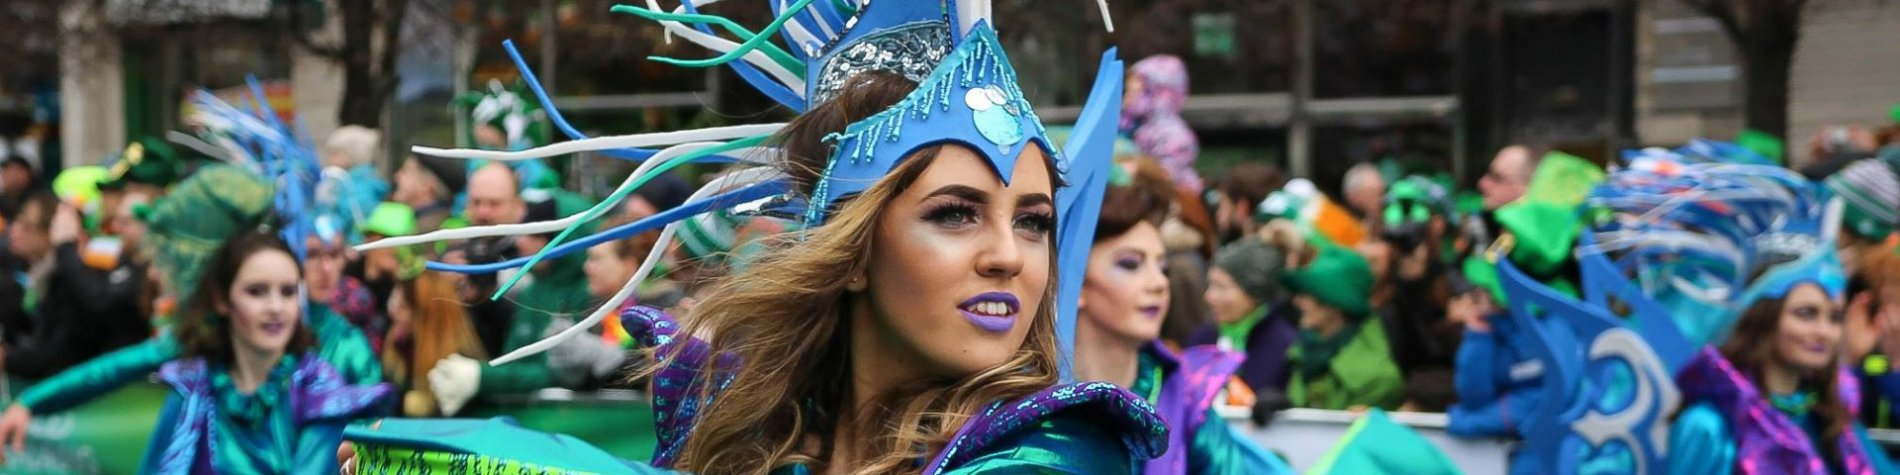 St. Patrick's Day parade & festival in Ireland